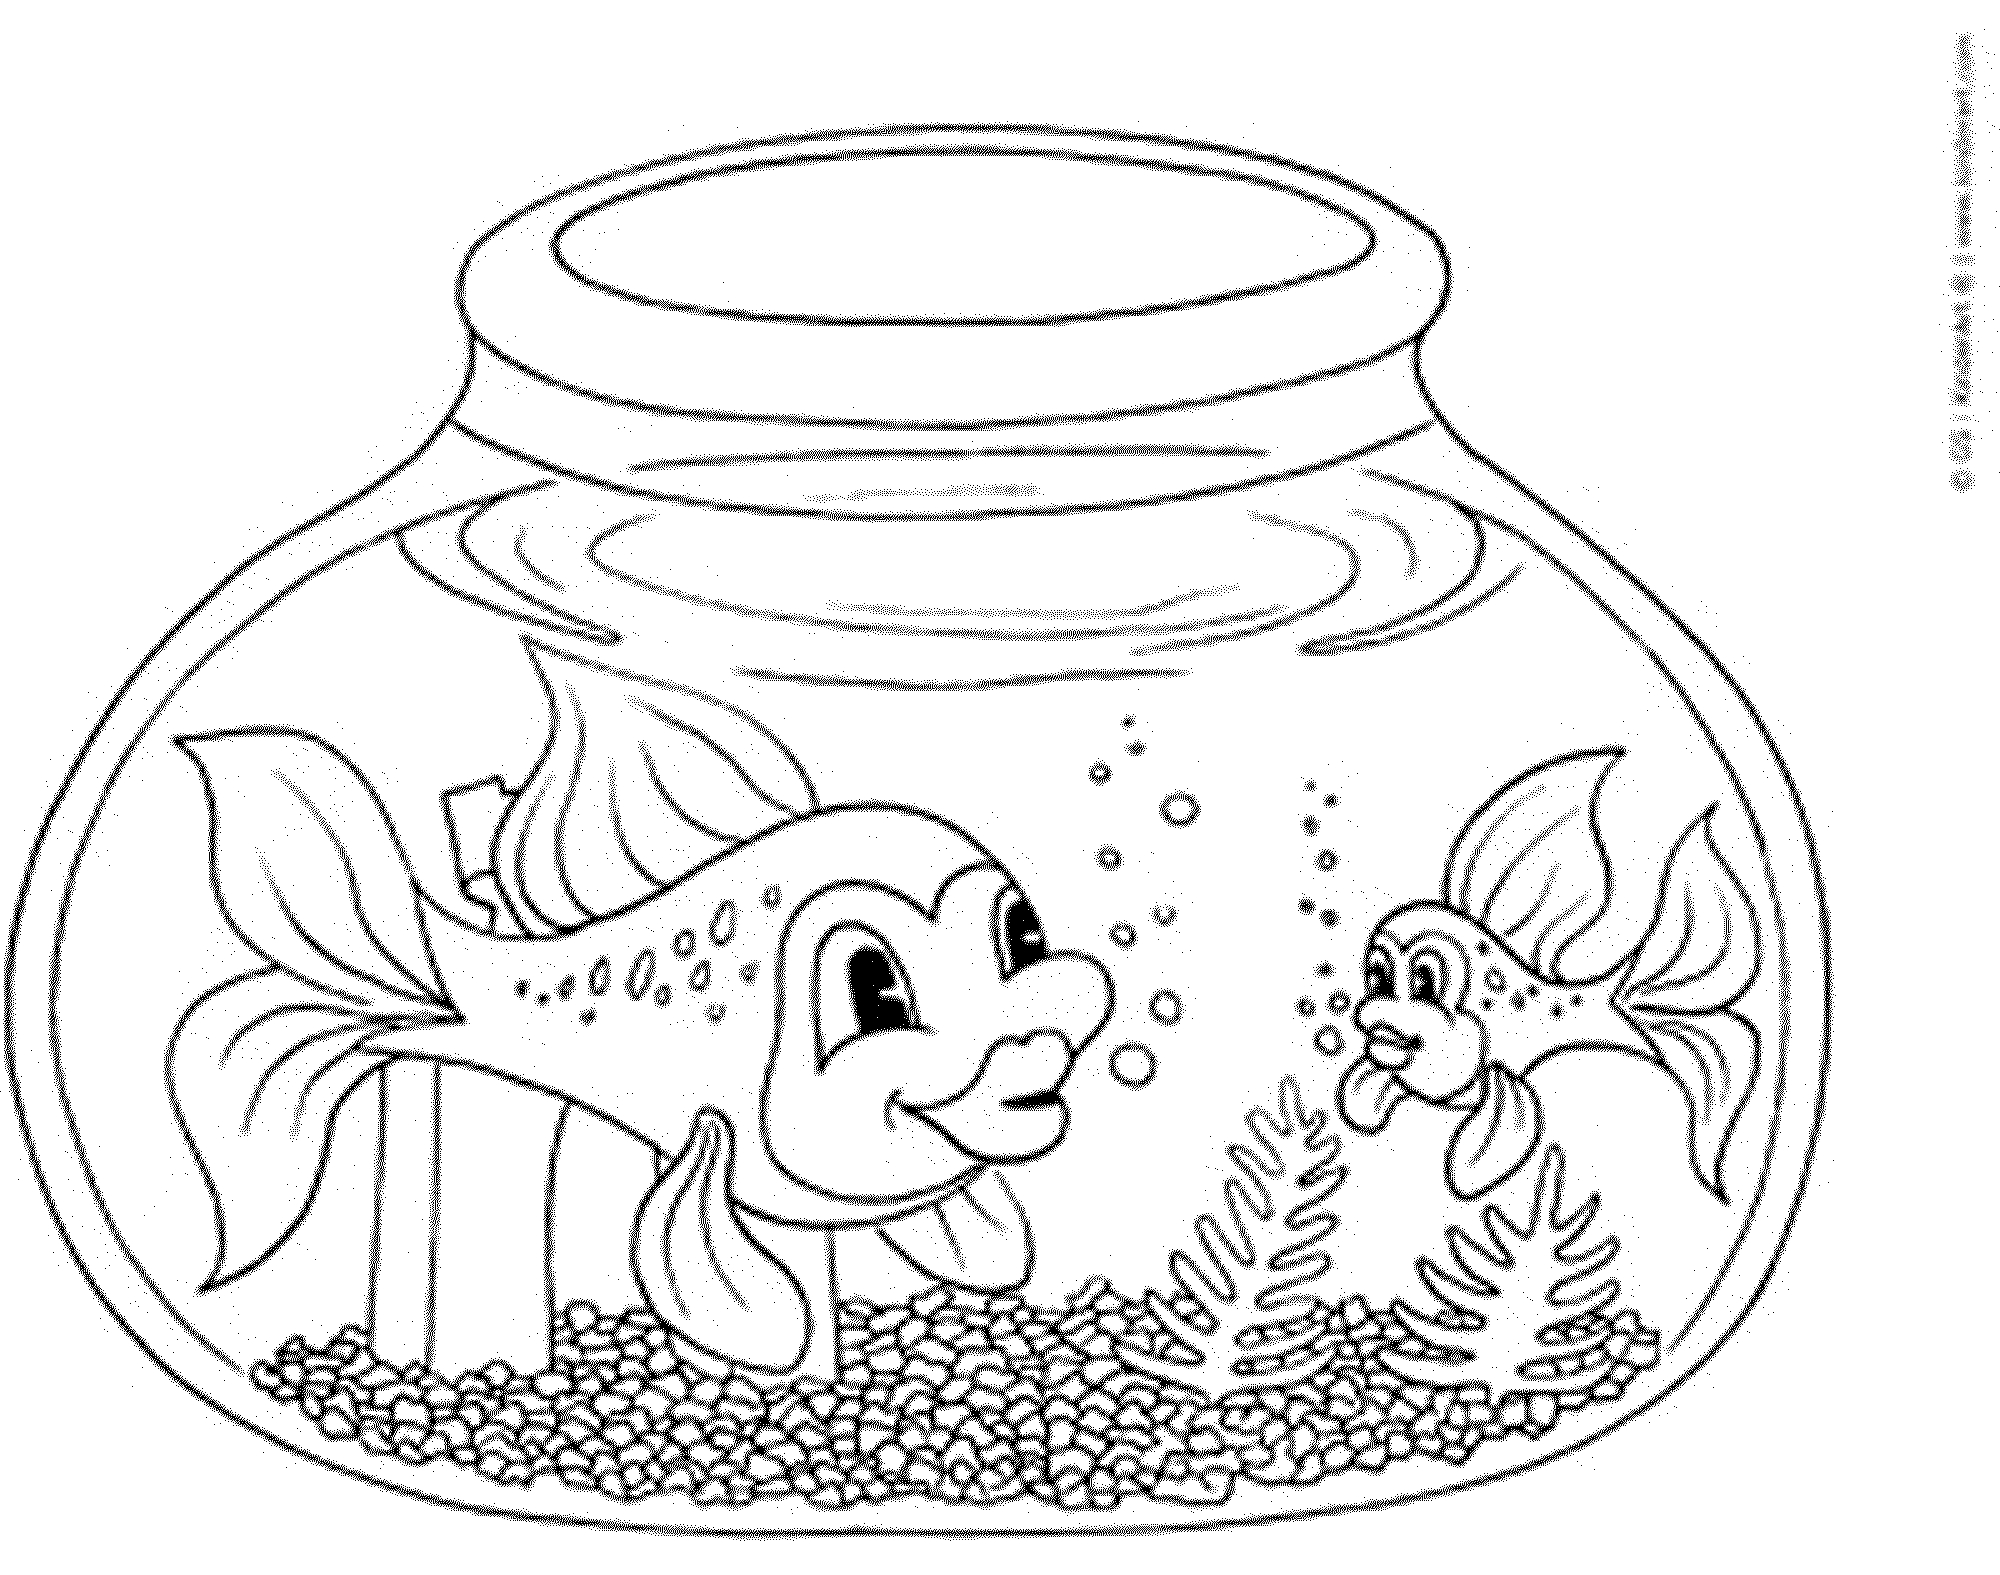 Rainbow Fish Coloring Pages Preschoolers Coloring Pages Fantastic Fish Coloring Pages Ocean Fish Coloring